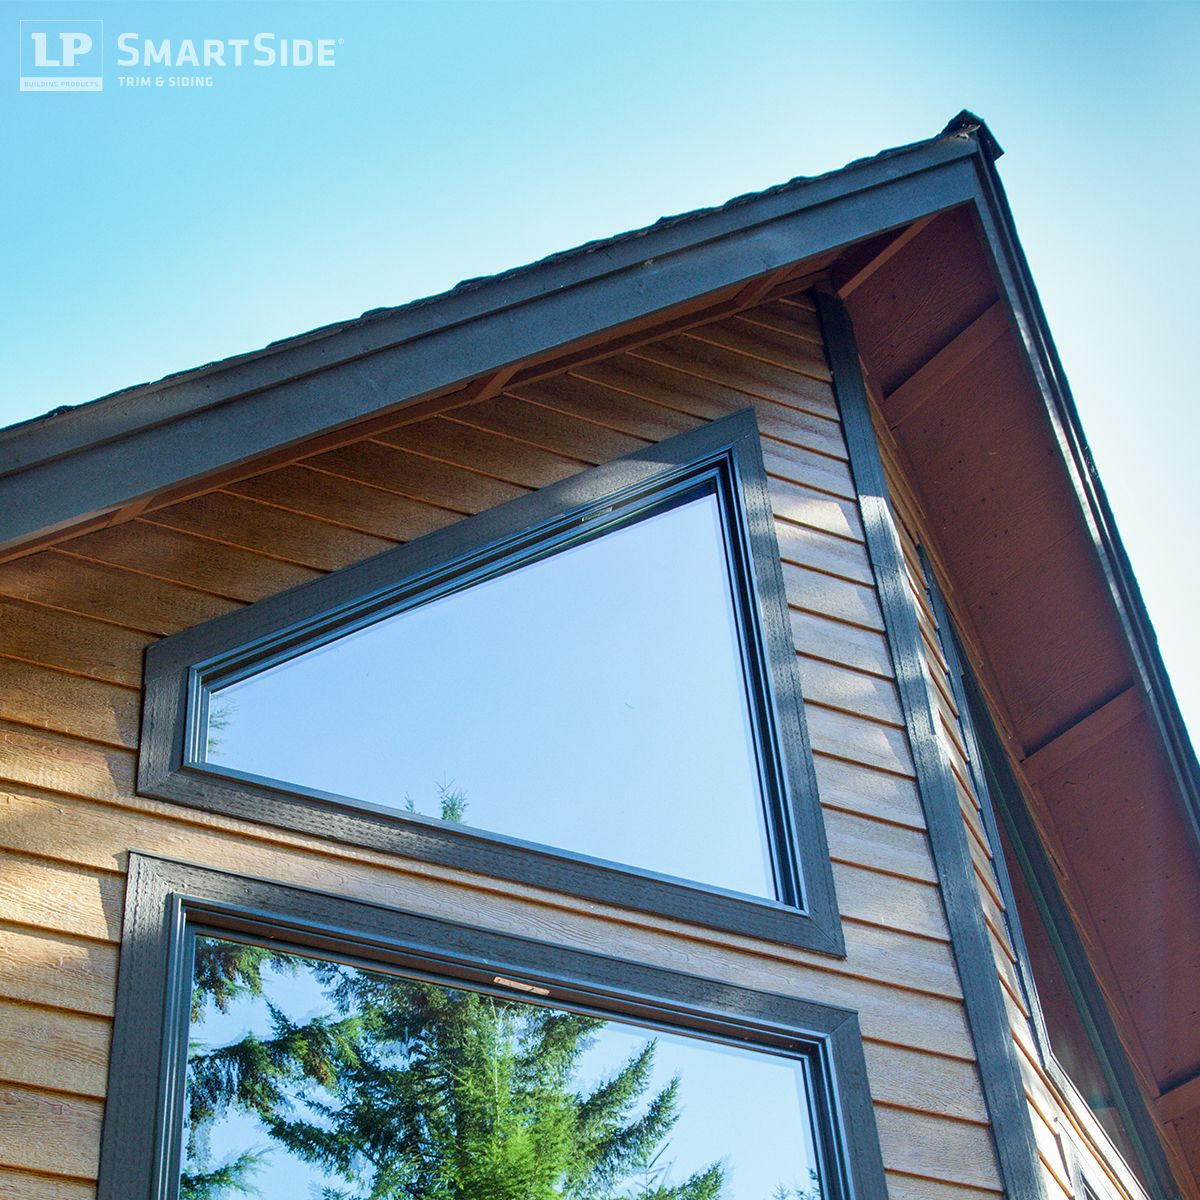 This photo shows one example of how lp smartside siding for Lp smart siding colors